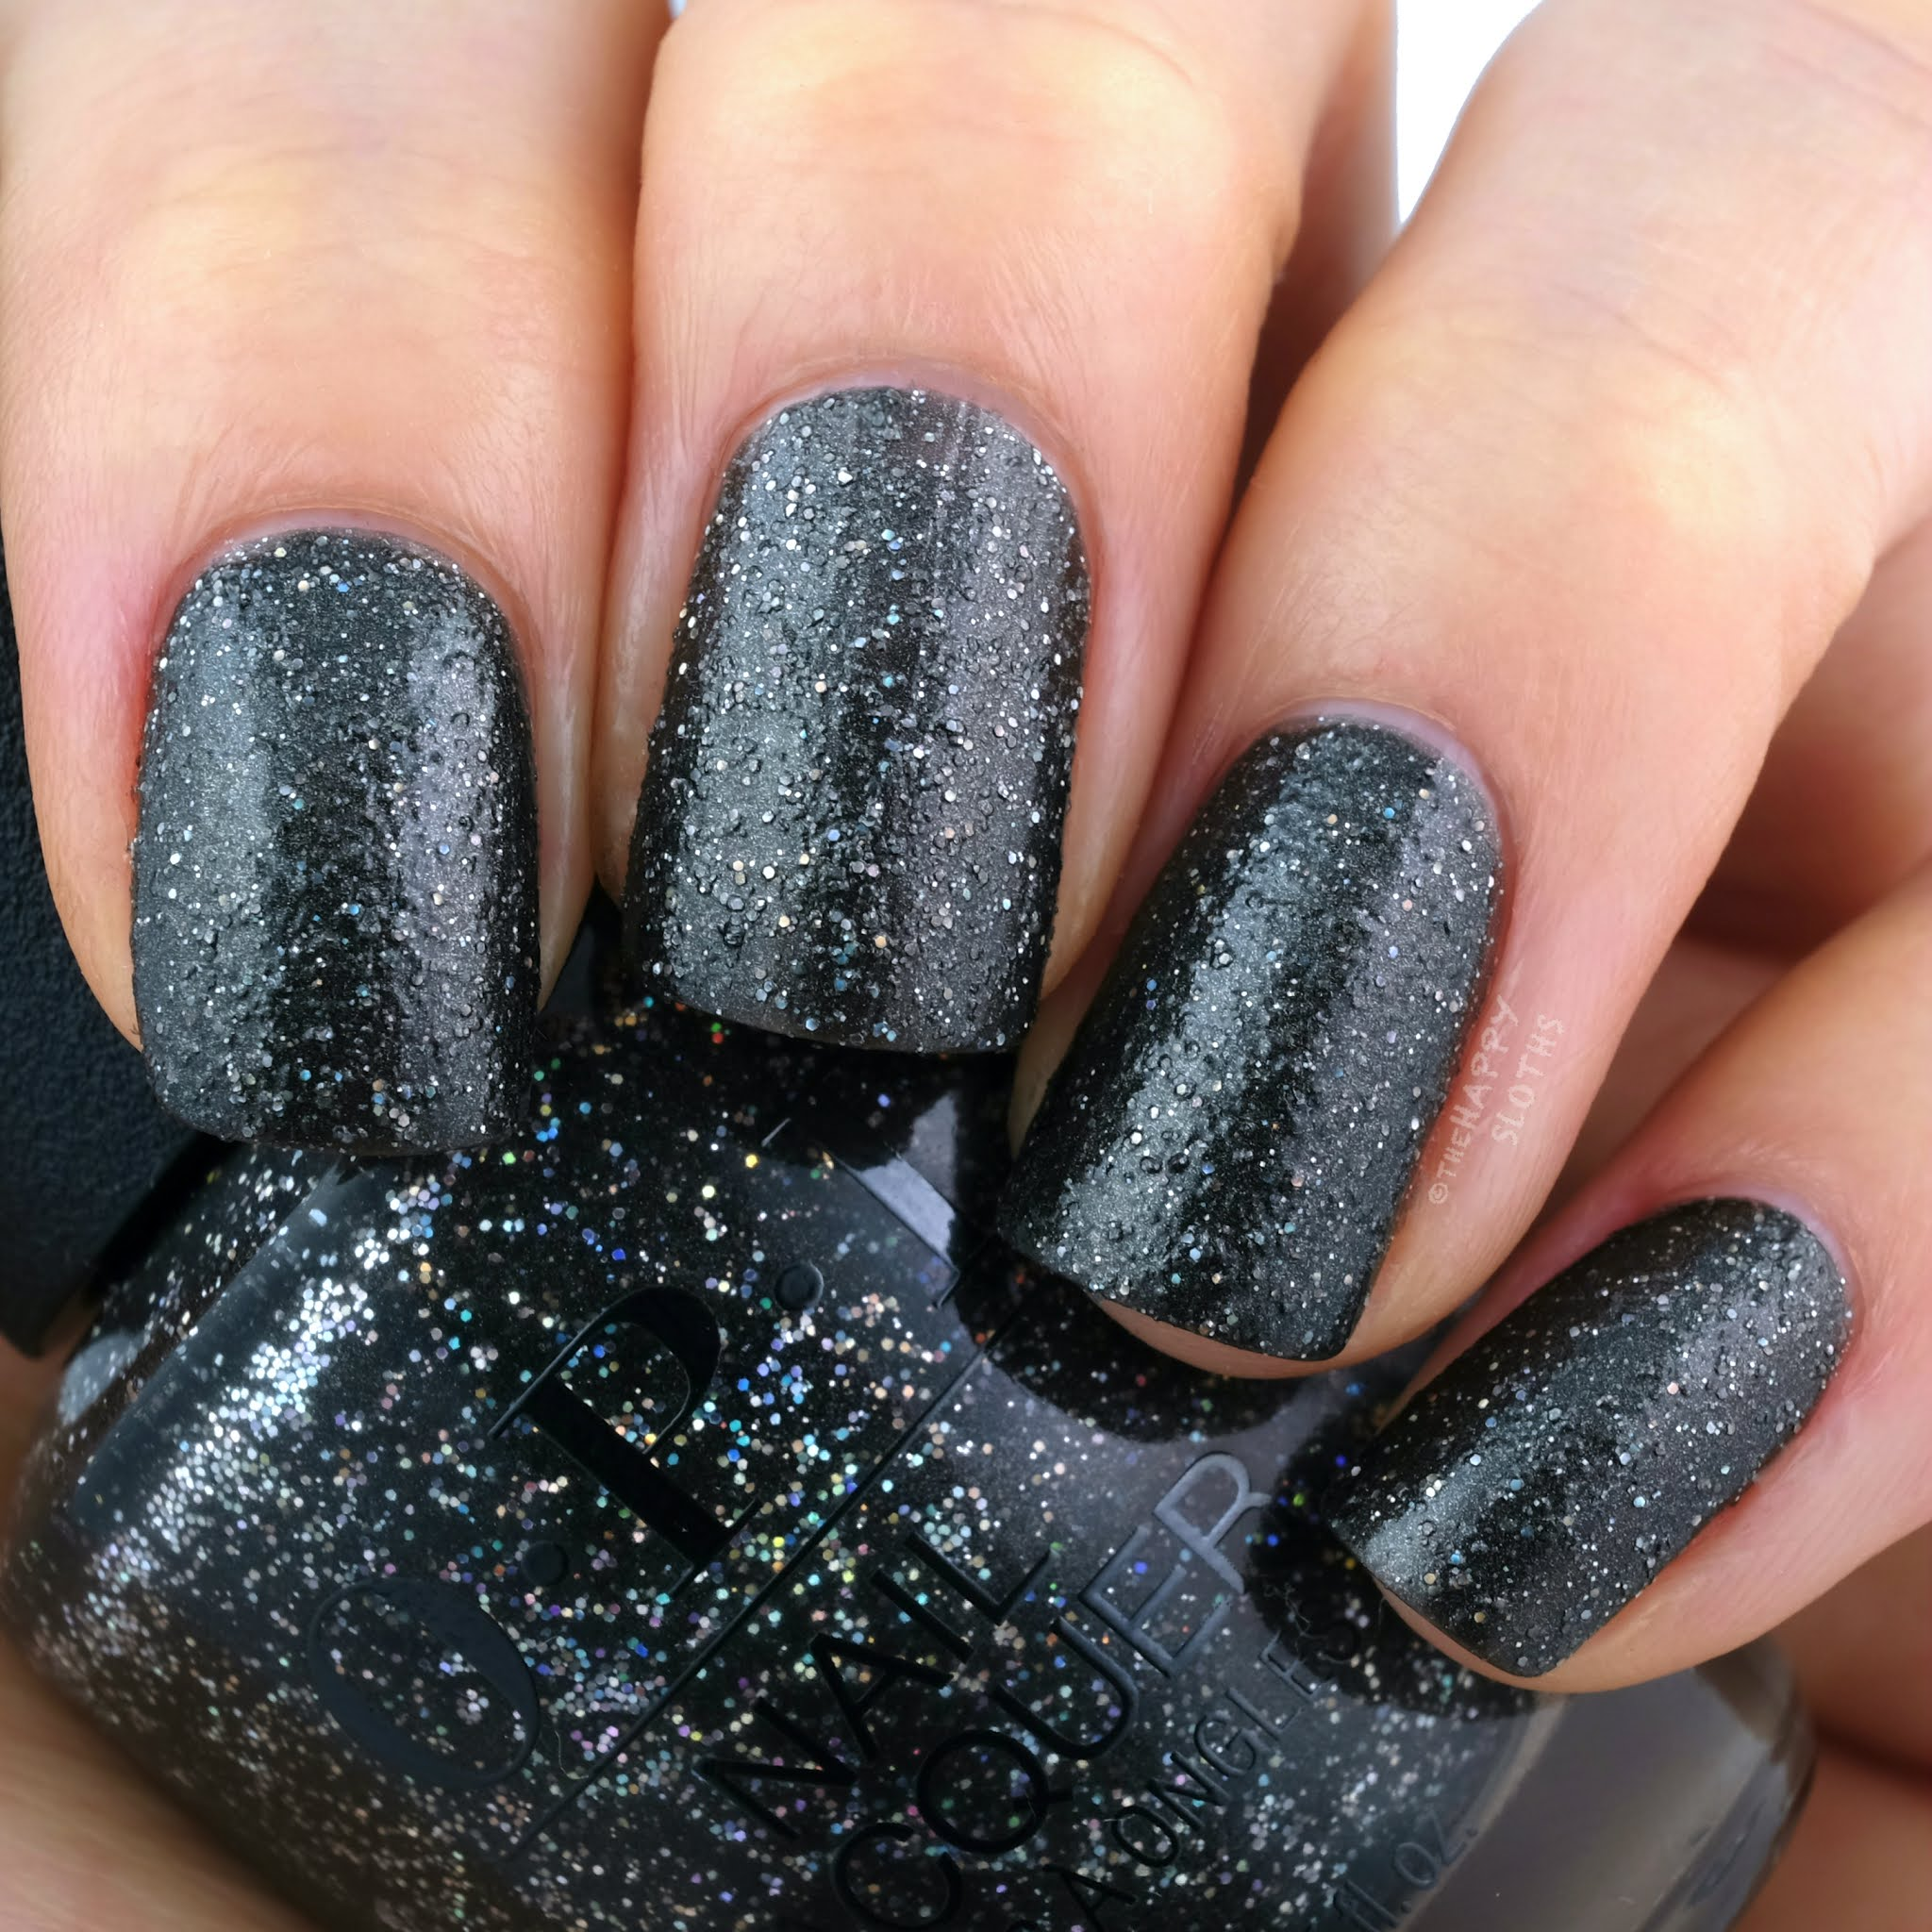 OPI Holiday 2020 Collection | Heart & Coal: Review and Swatches